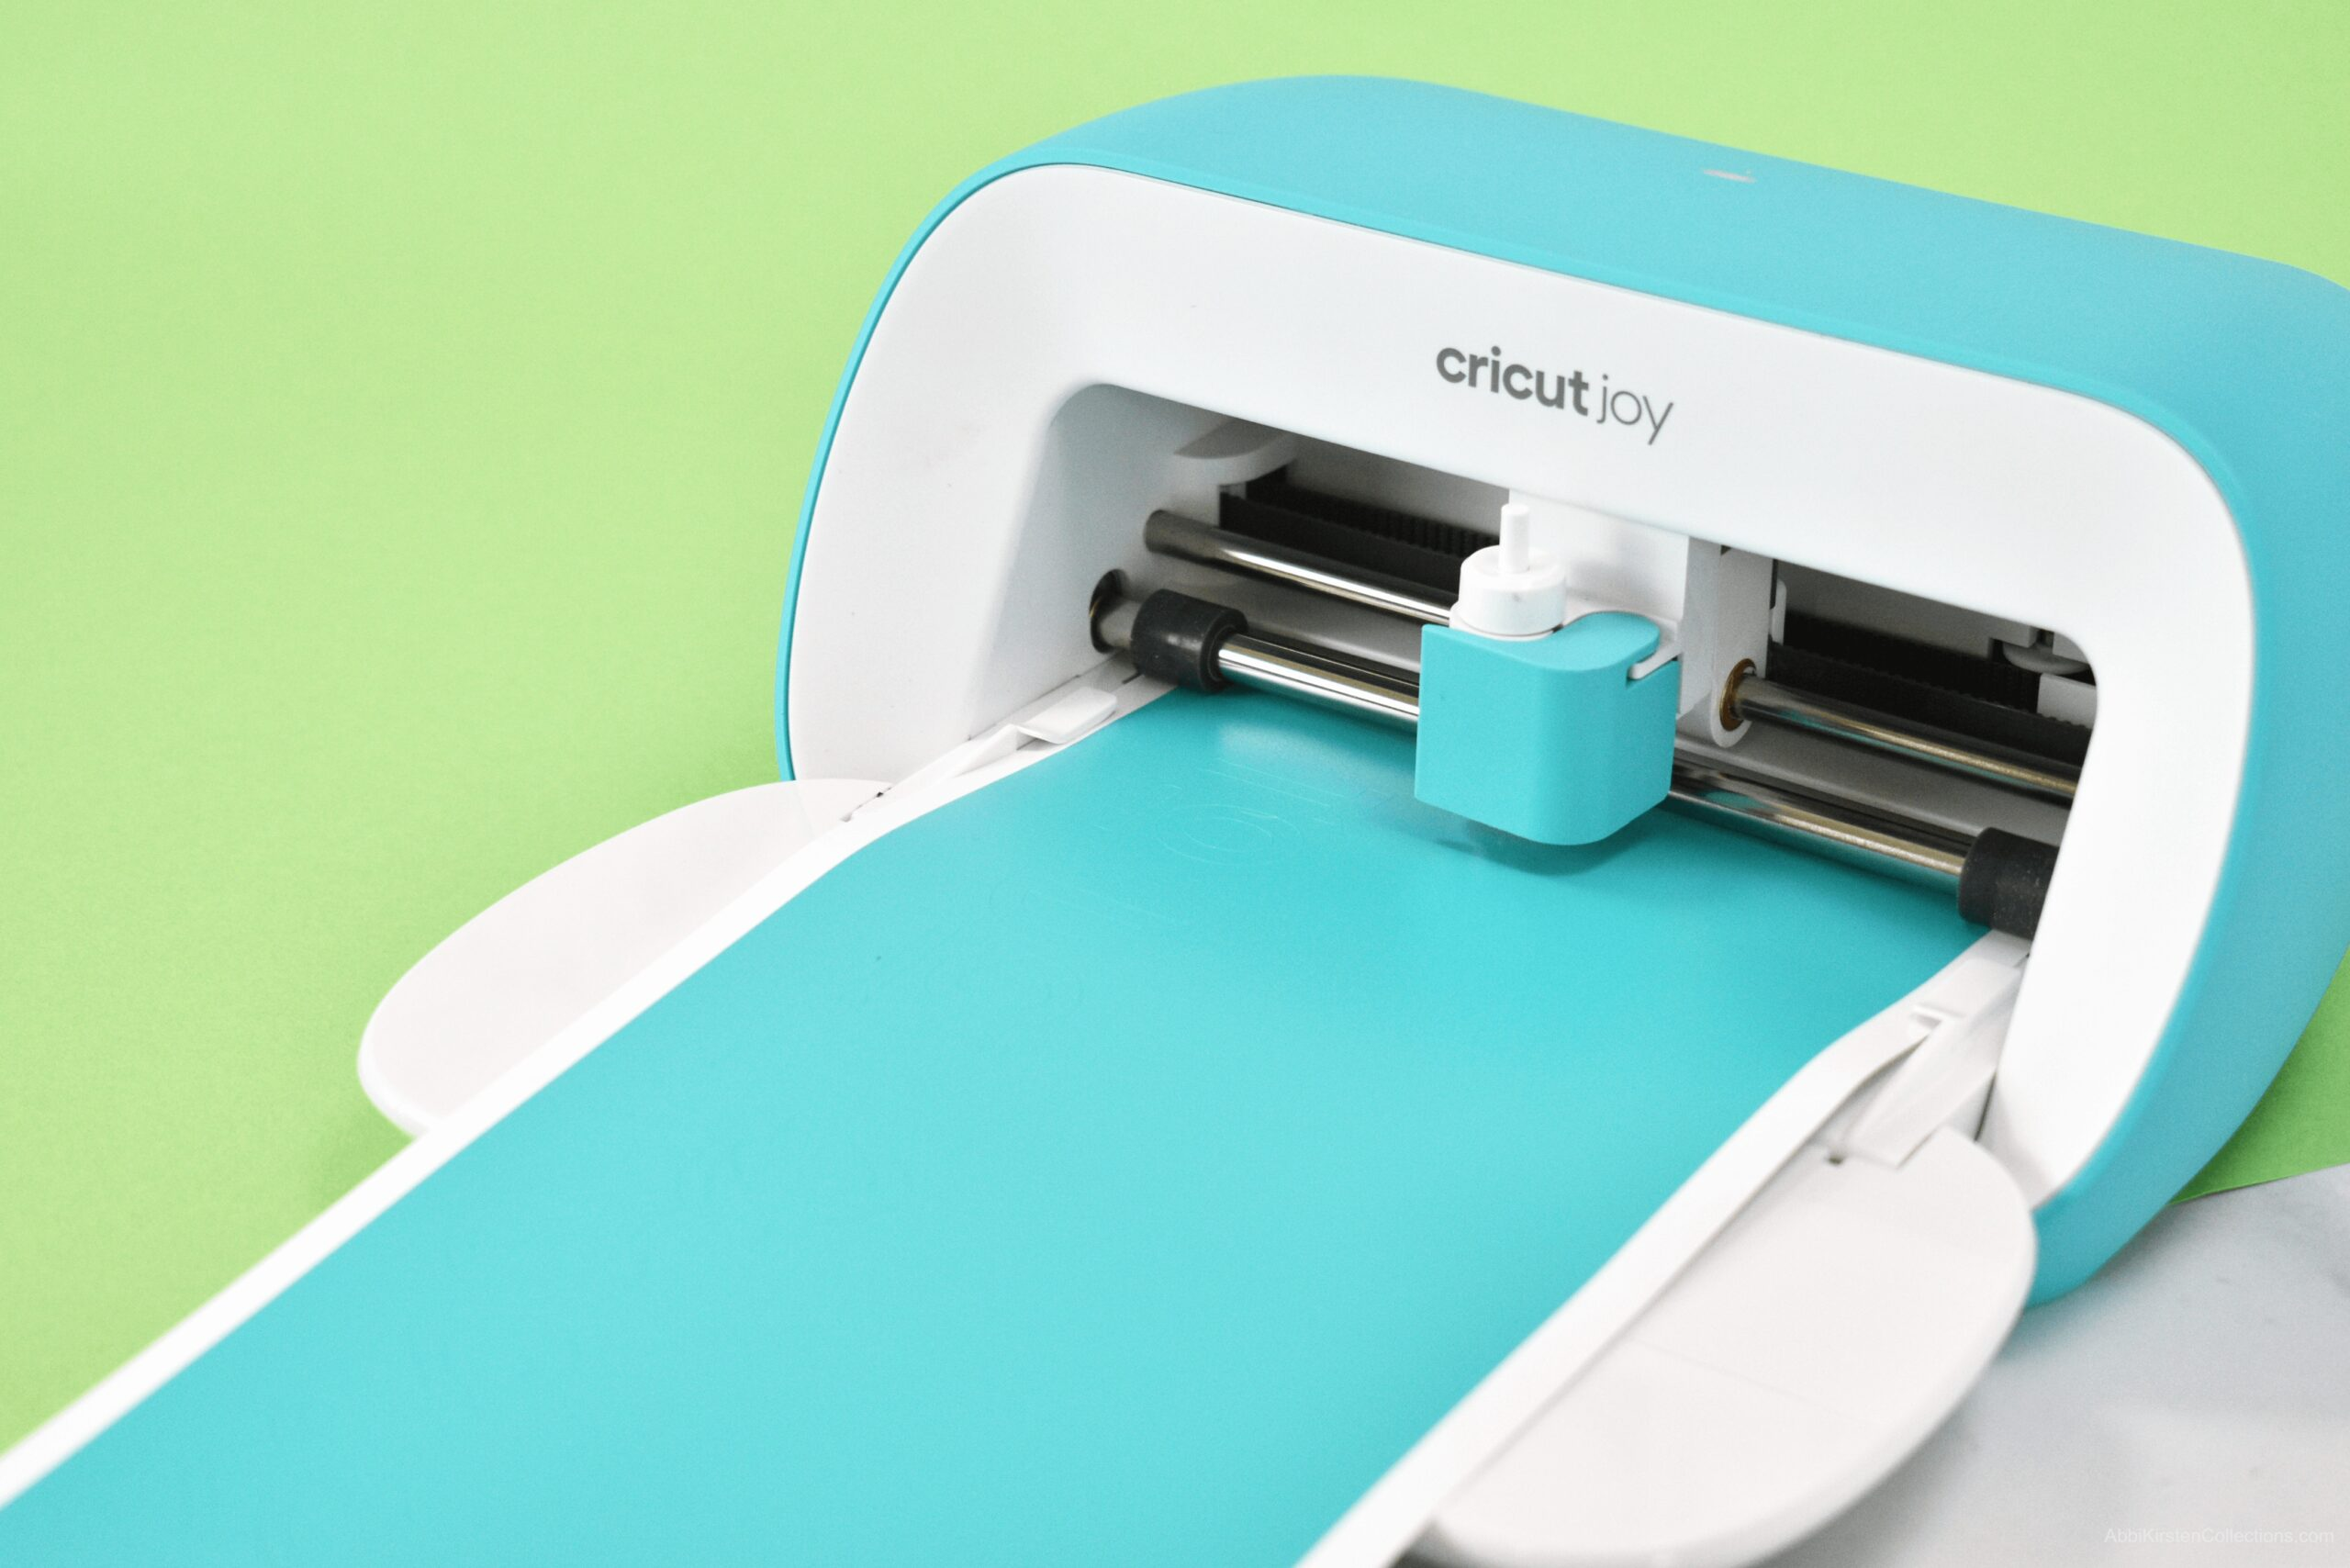 12 Cricut Joy Accessories and Materials You Need